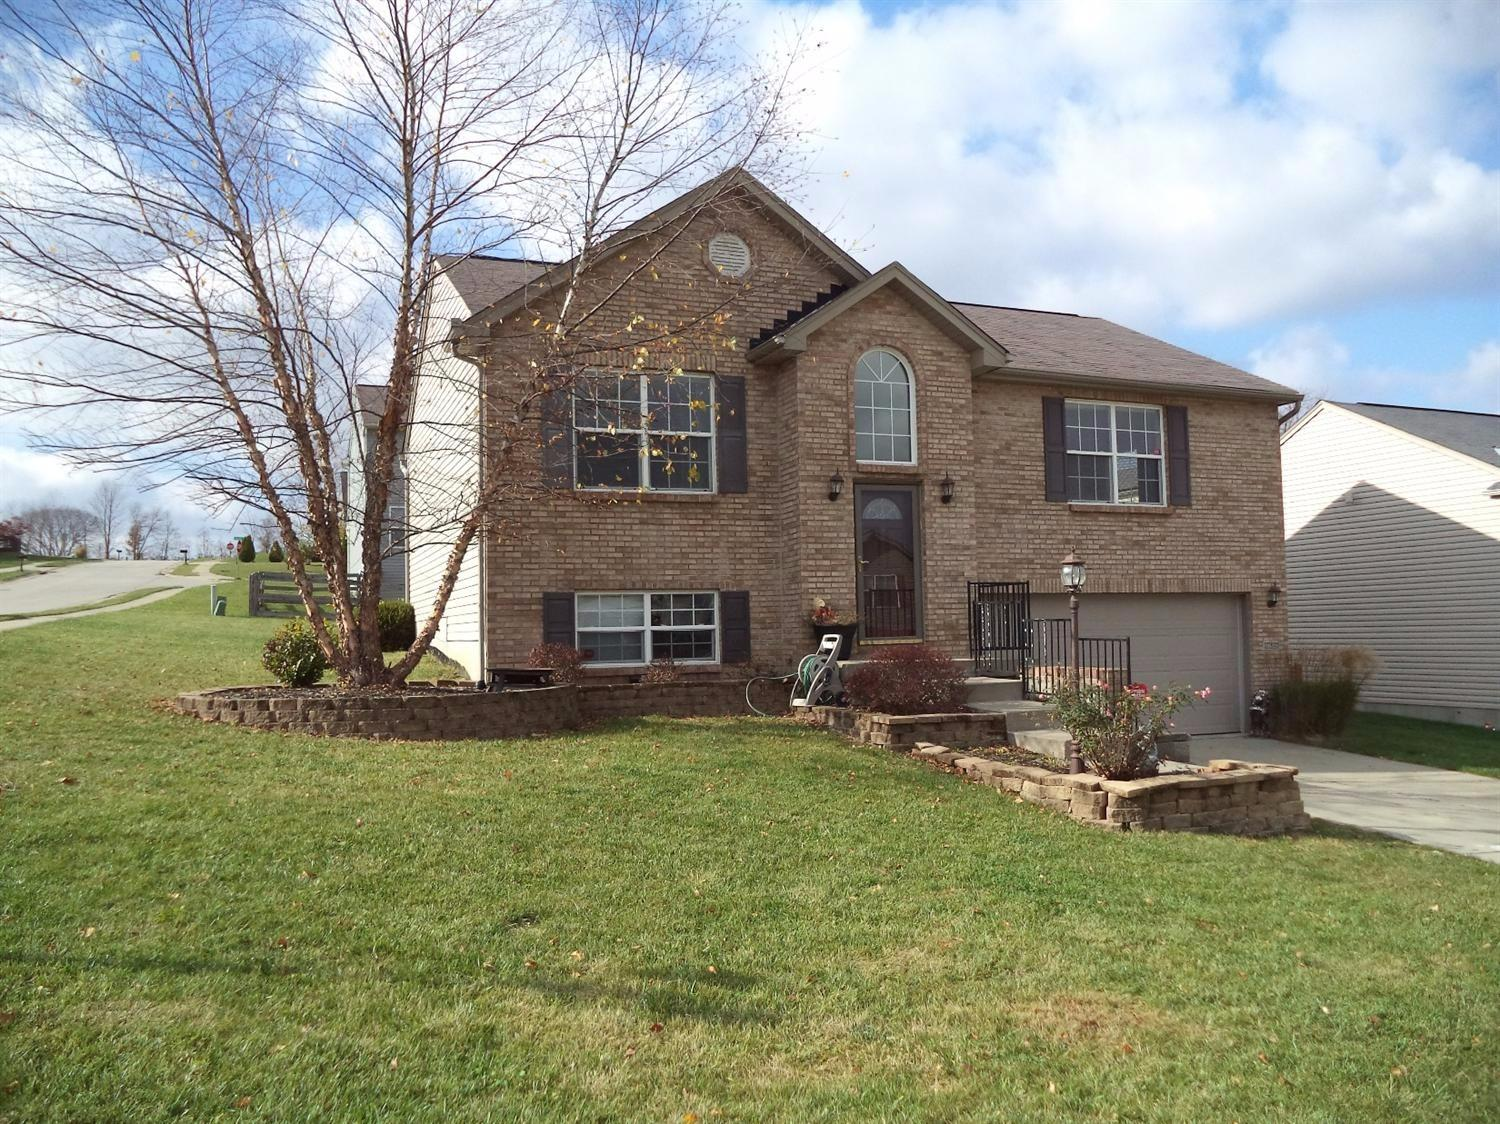 Photo 1 for 6628 Tiger Ct Florence, KY 41042